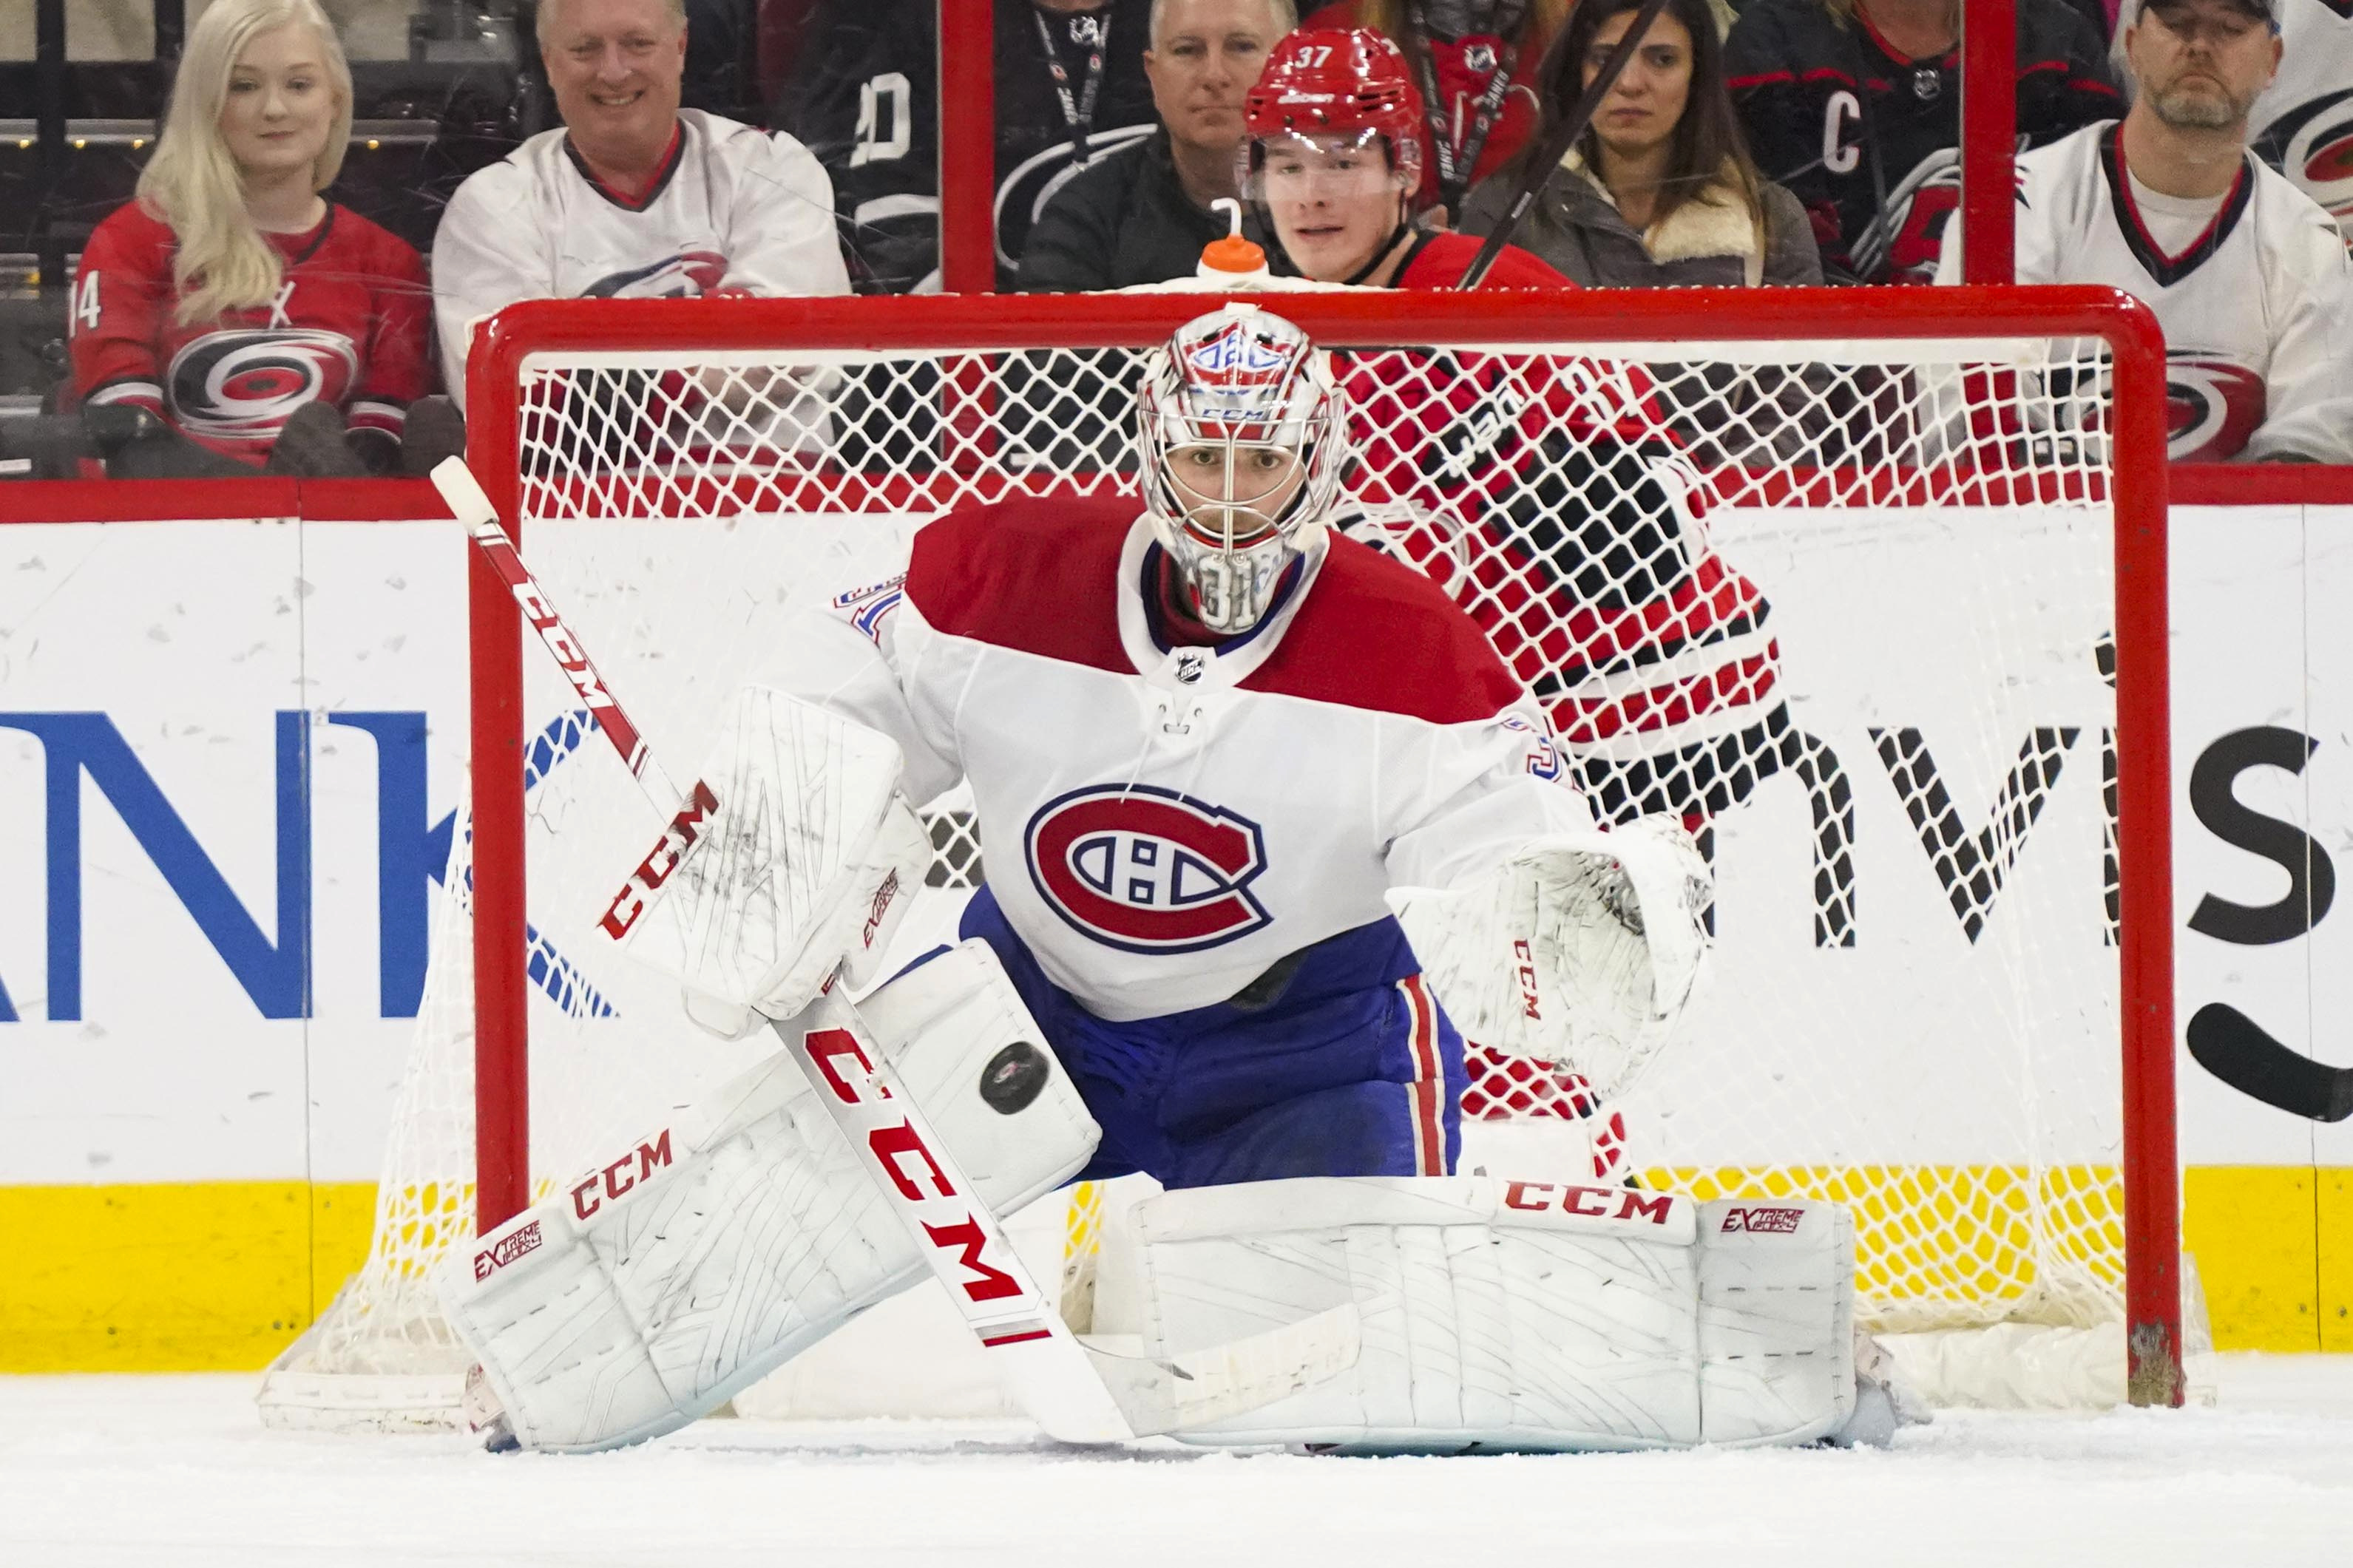 Montreal Canadiens Schedule, Roster, News, and Rumors | Eyes On The